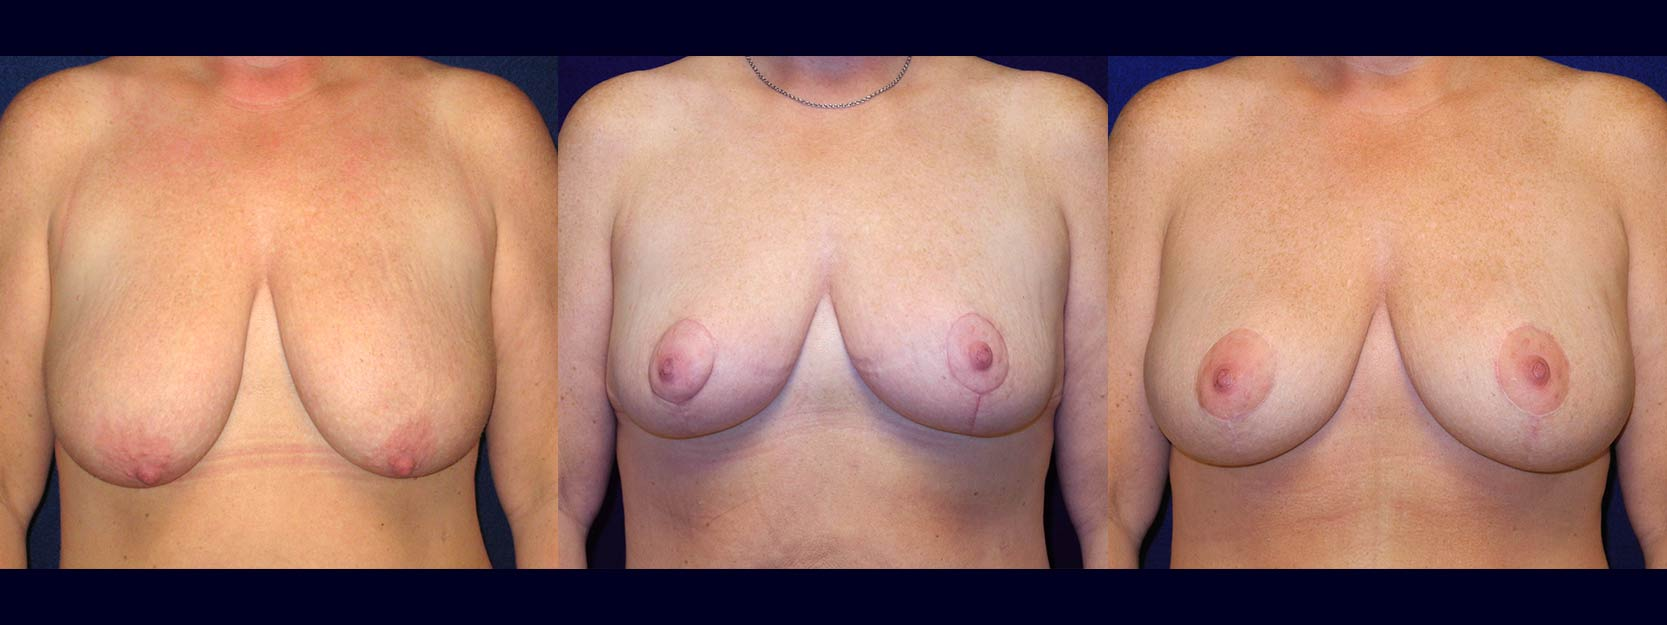 Frontal View - Breast Augmentation with Lift - Silicone Implants